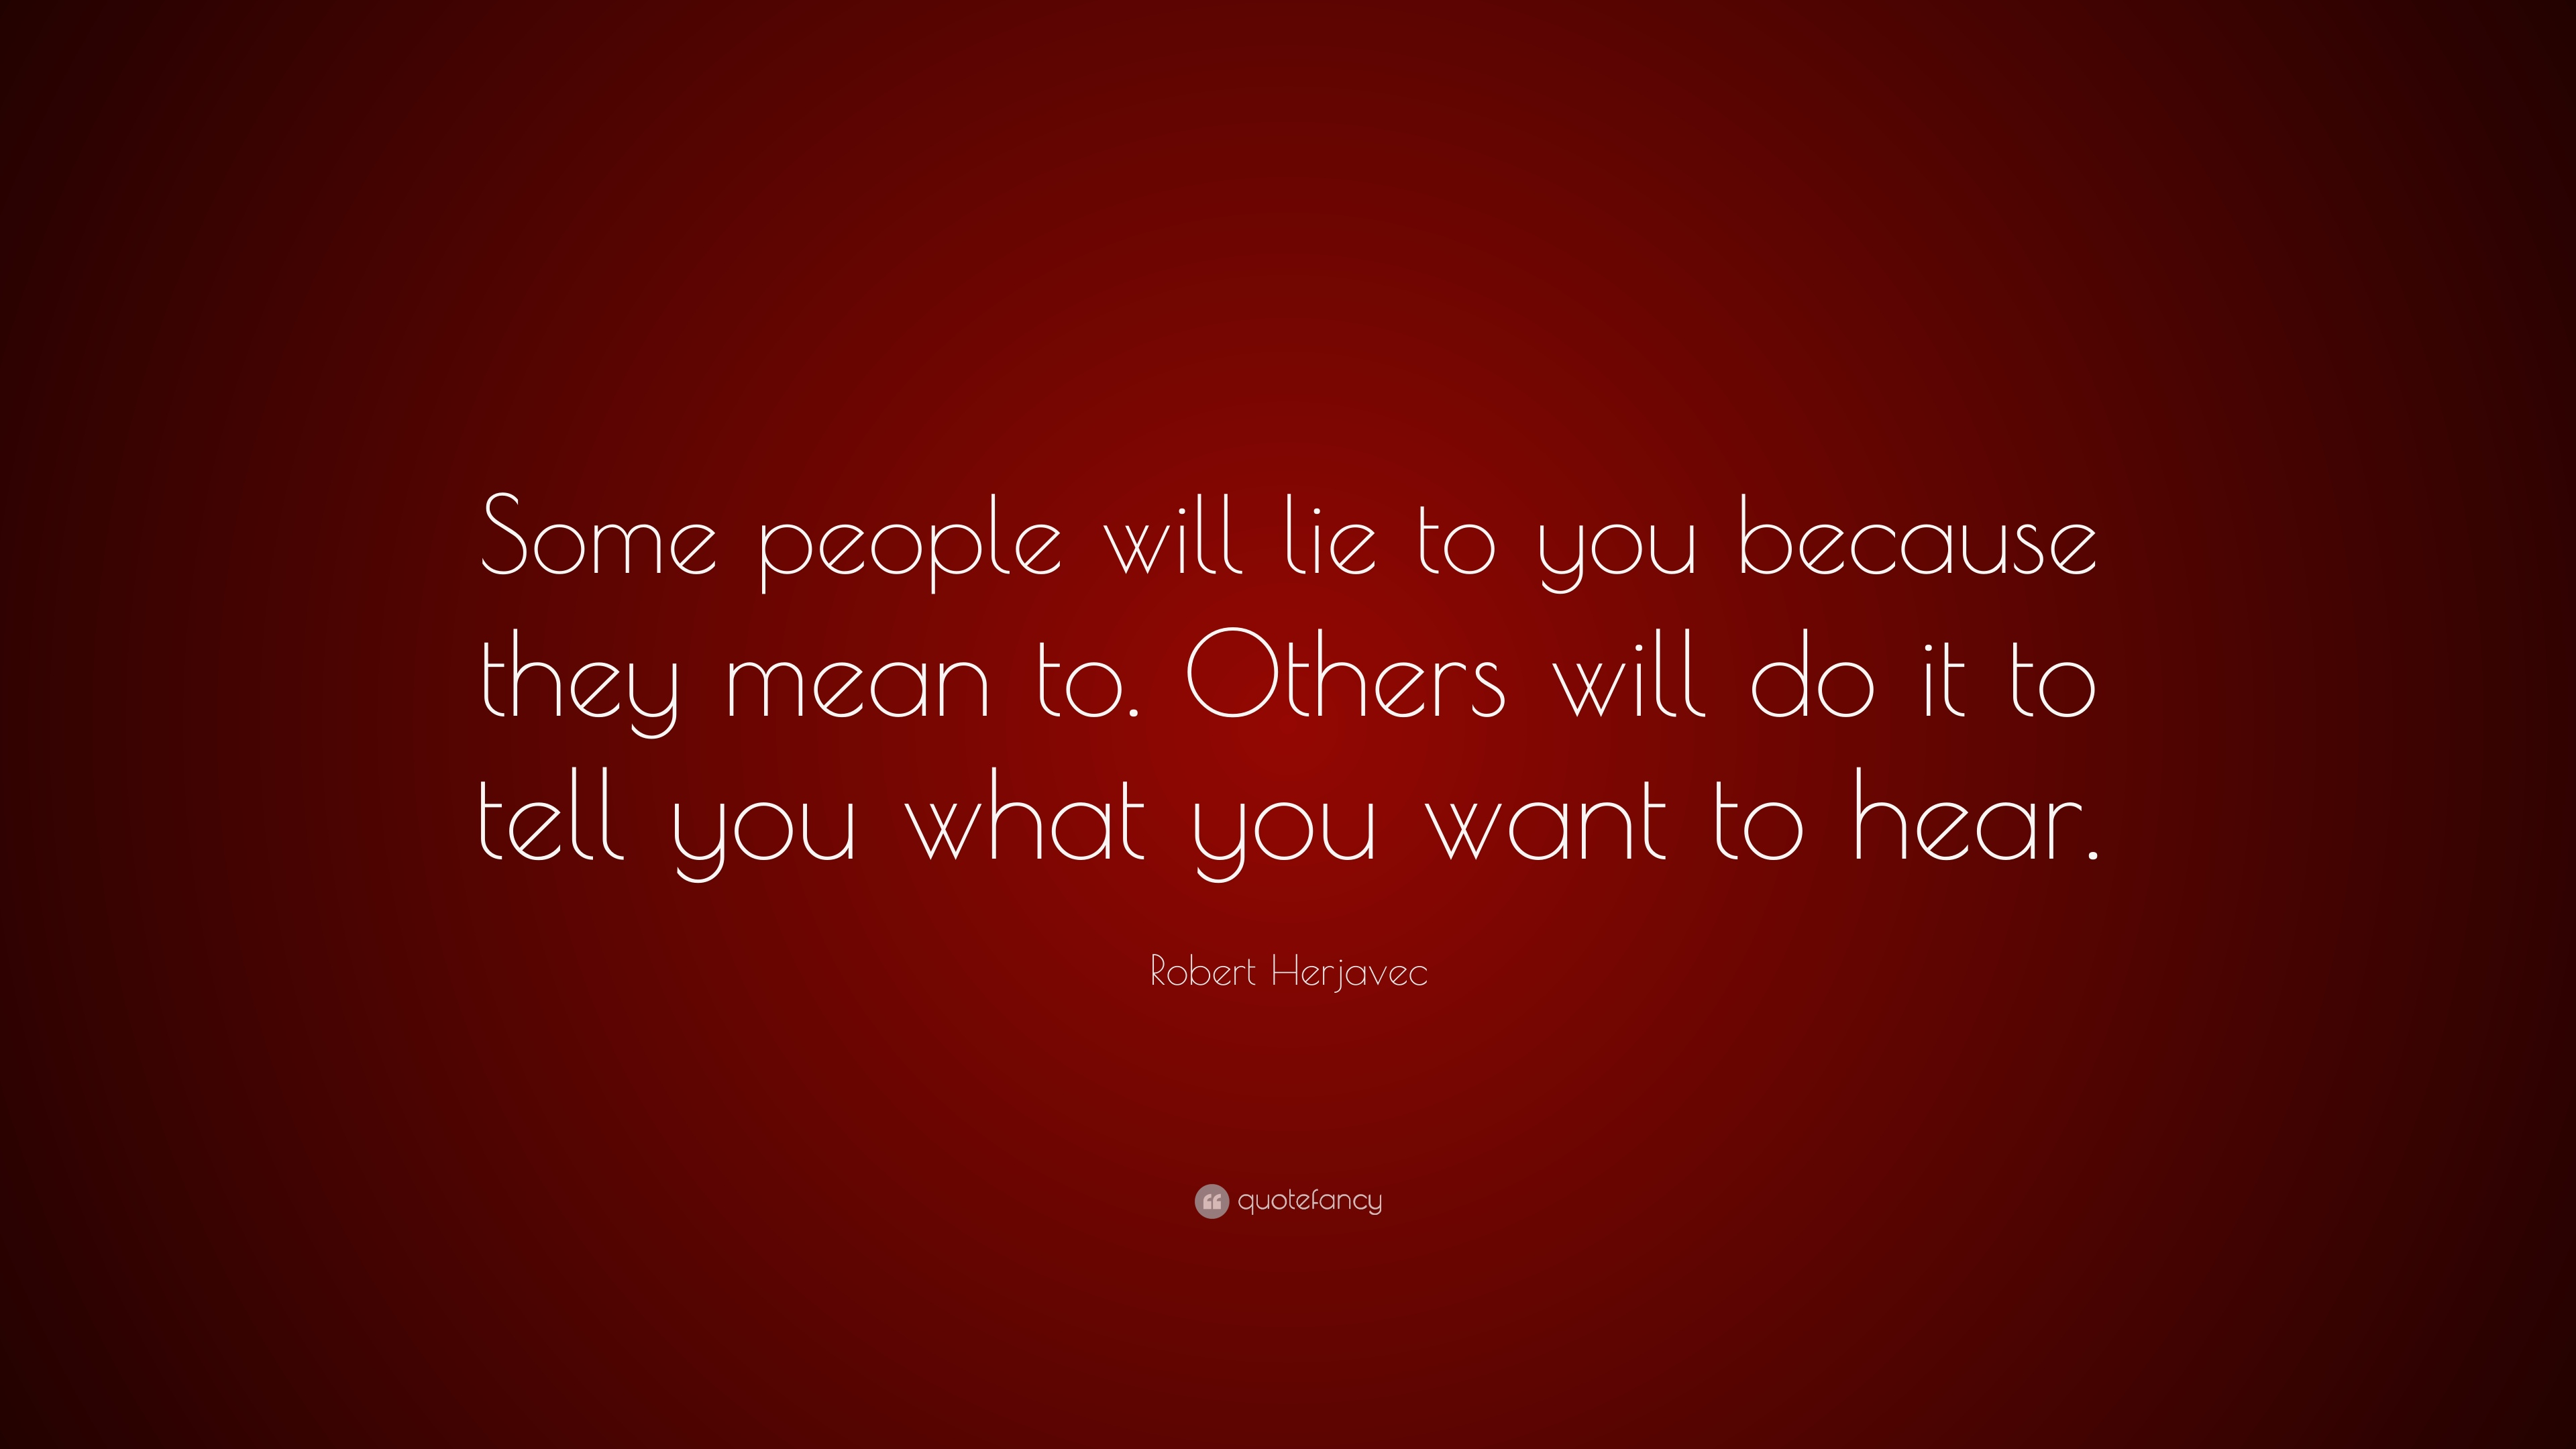 Robert Herjavec Quote: Some people will lie to you